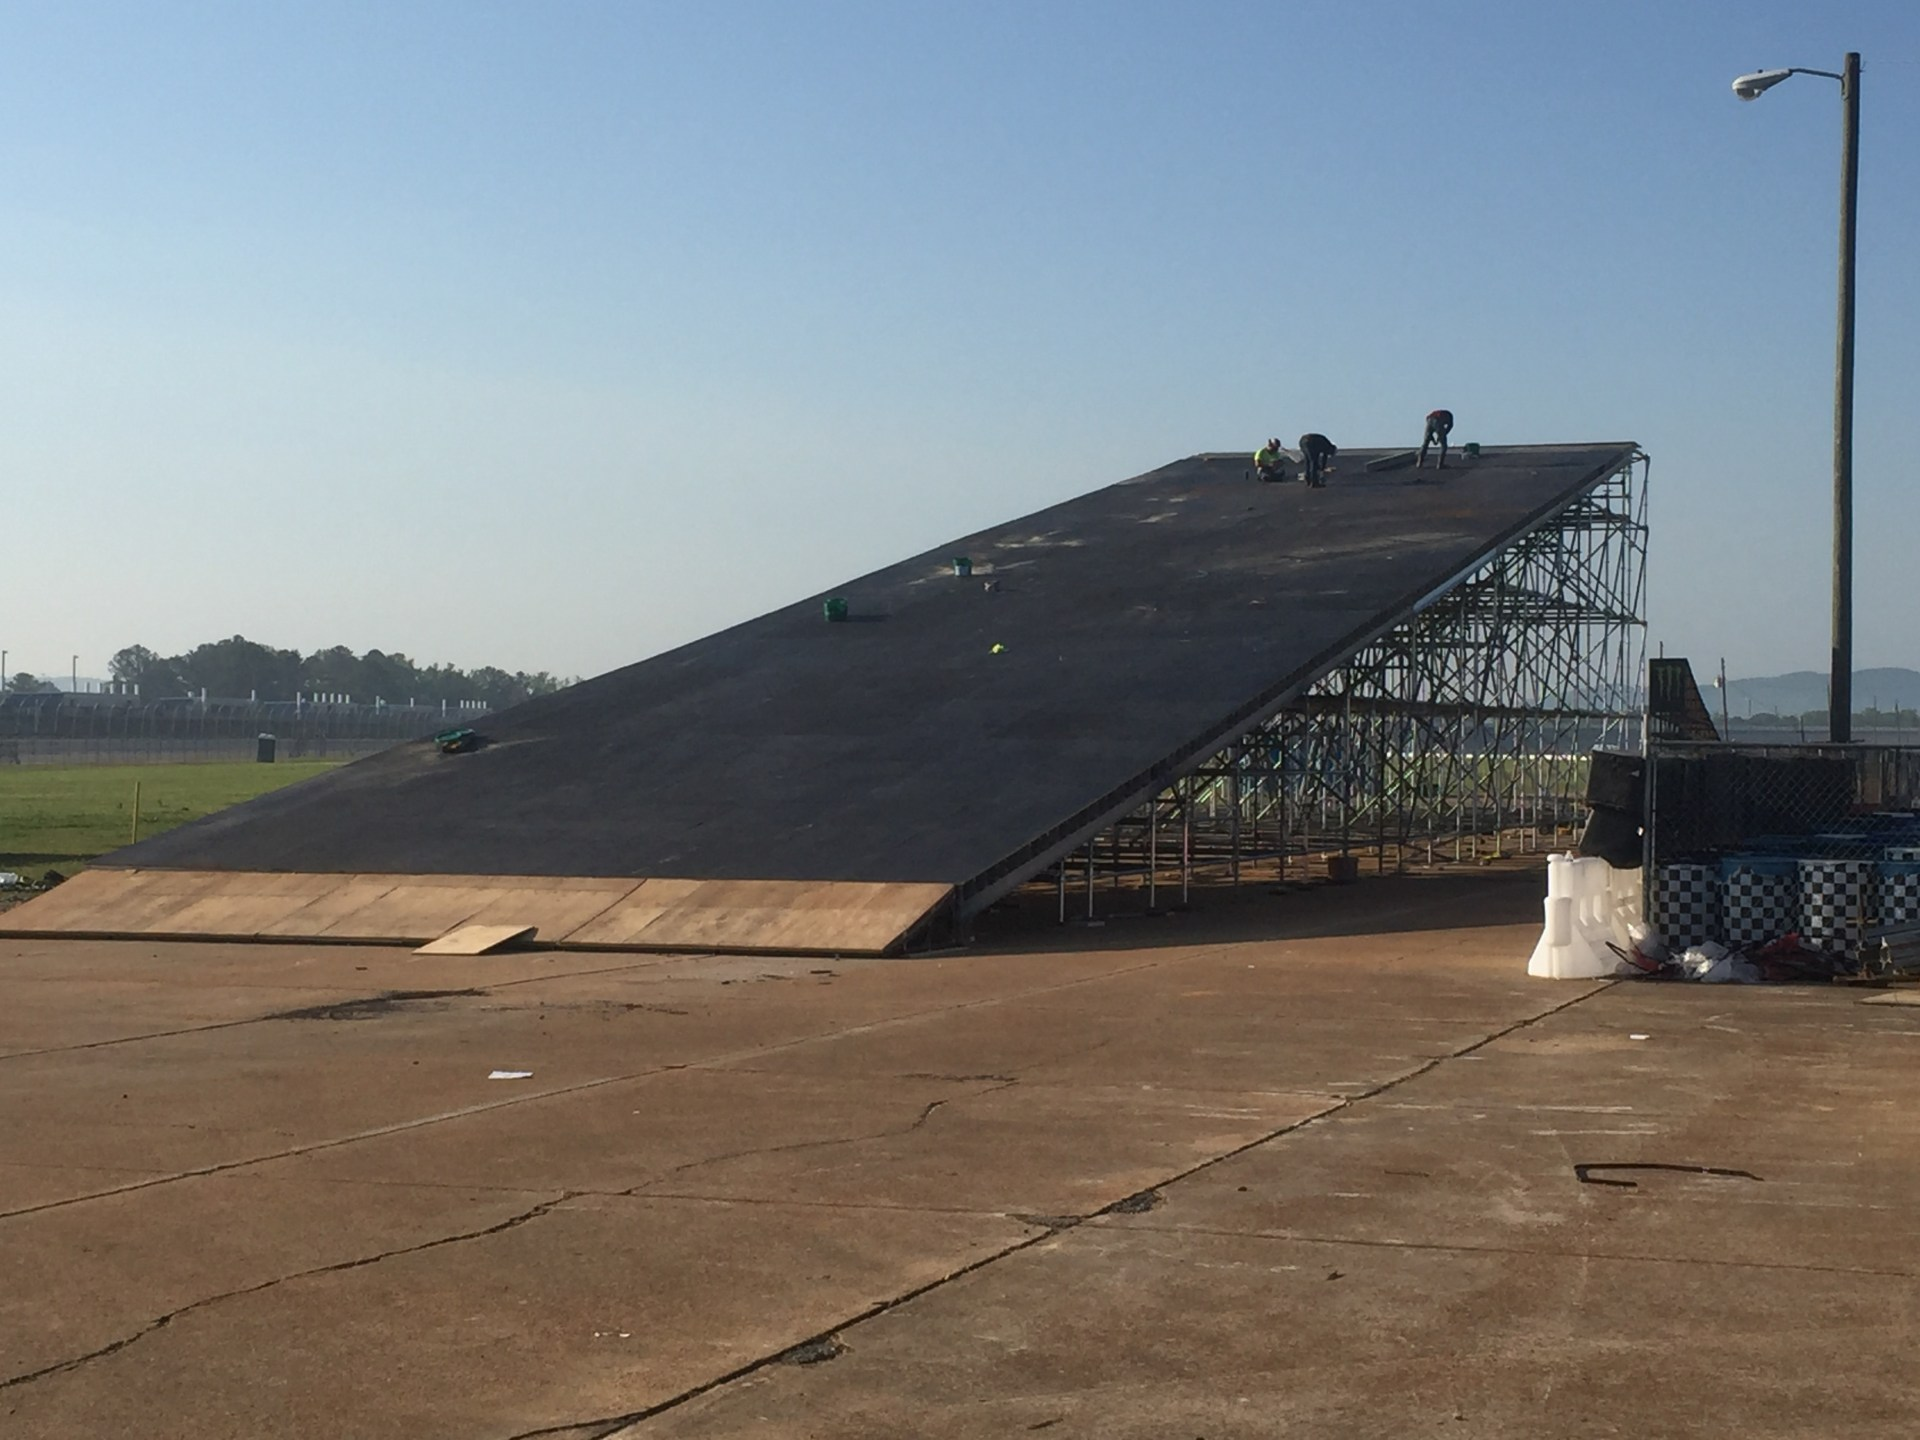 Talledega Superspeedway scaffold motorcycle ramp 2